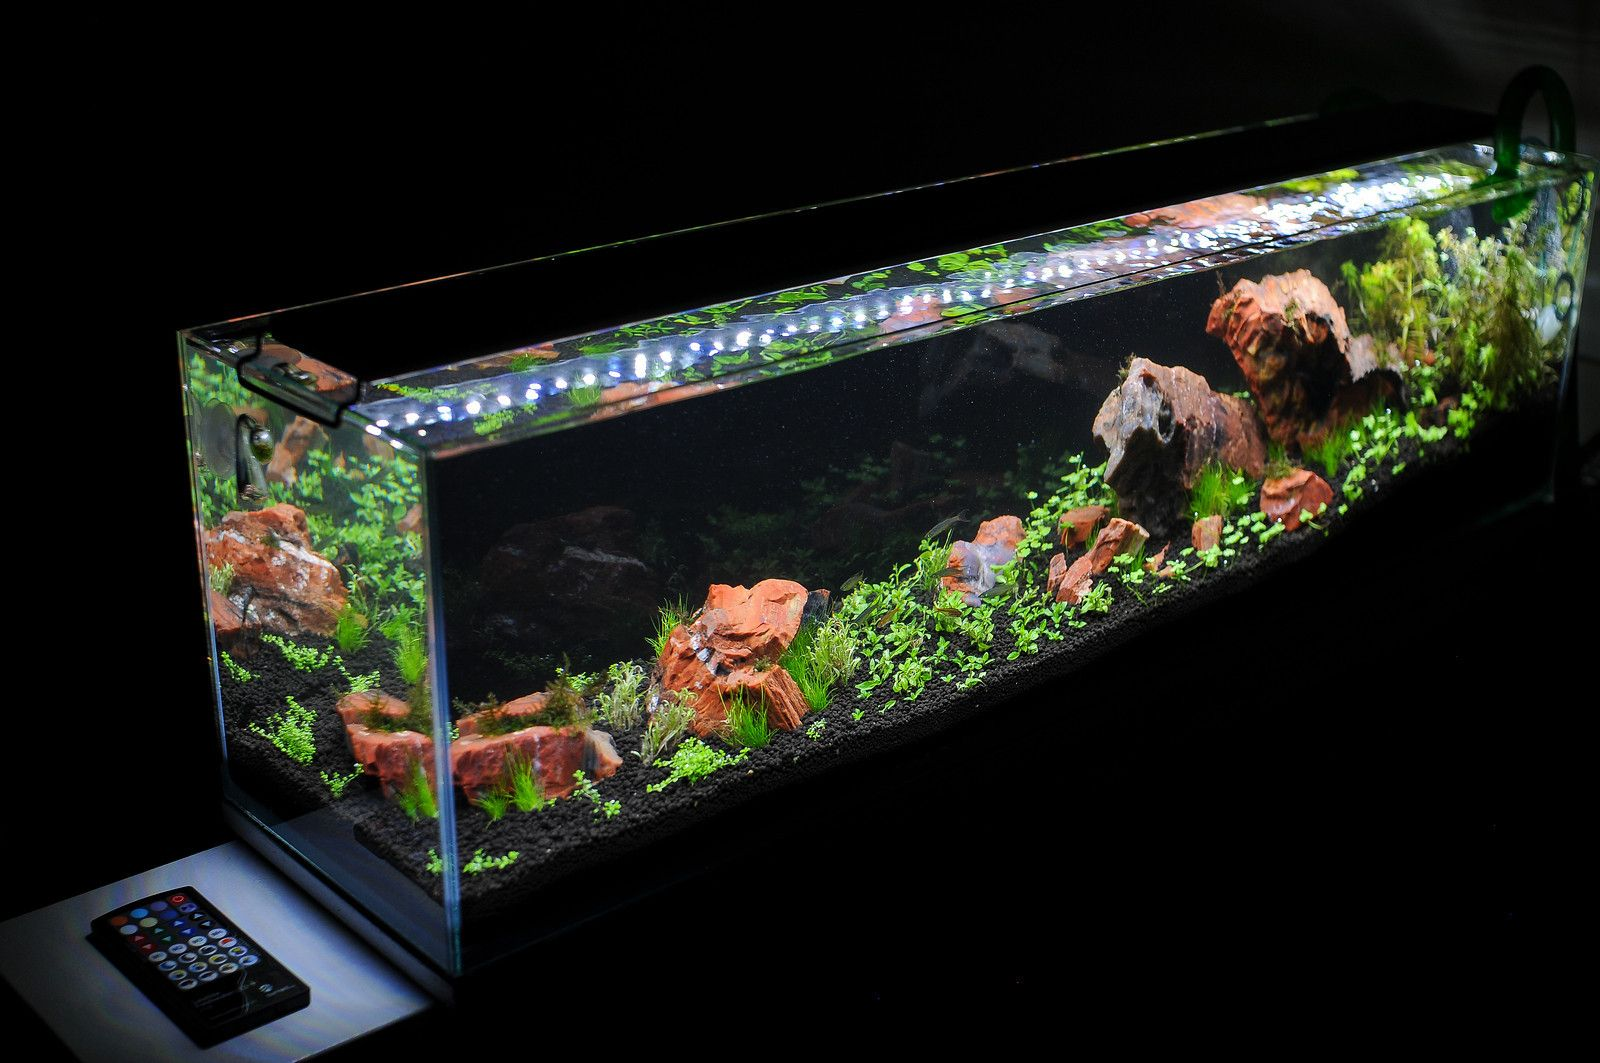 Nano led aquarium fish tank lighting - Satellite Club Showcase Your Current Sat Tank Links To Journals More